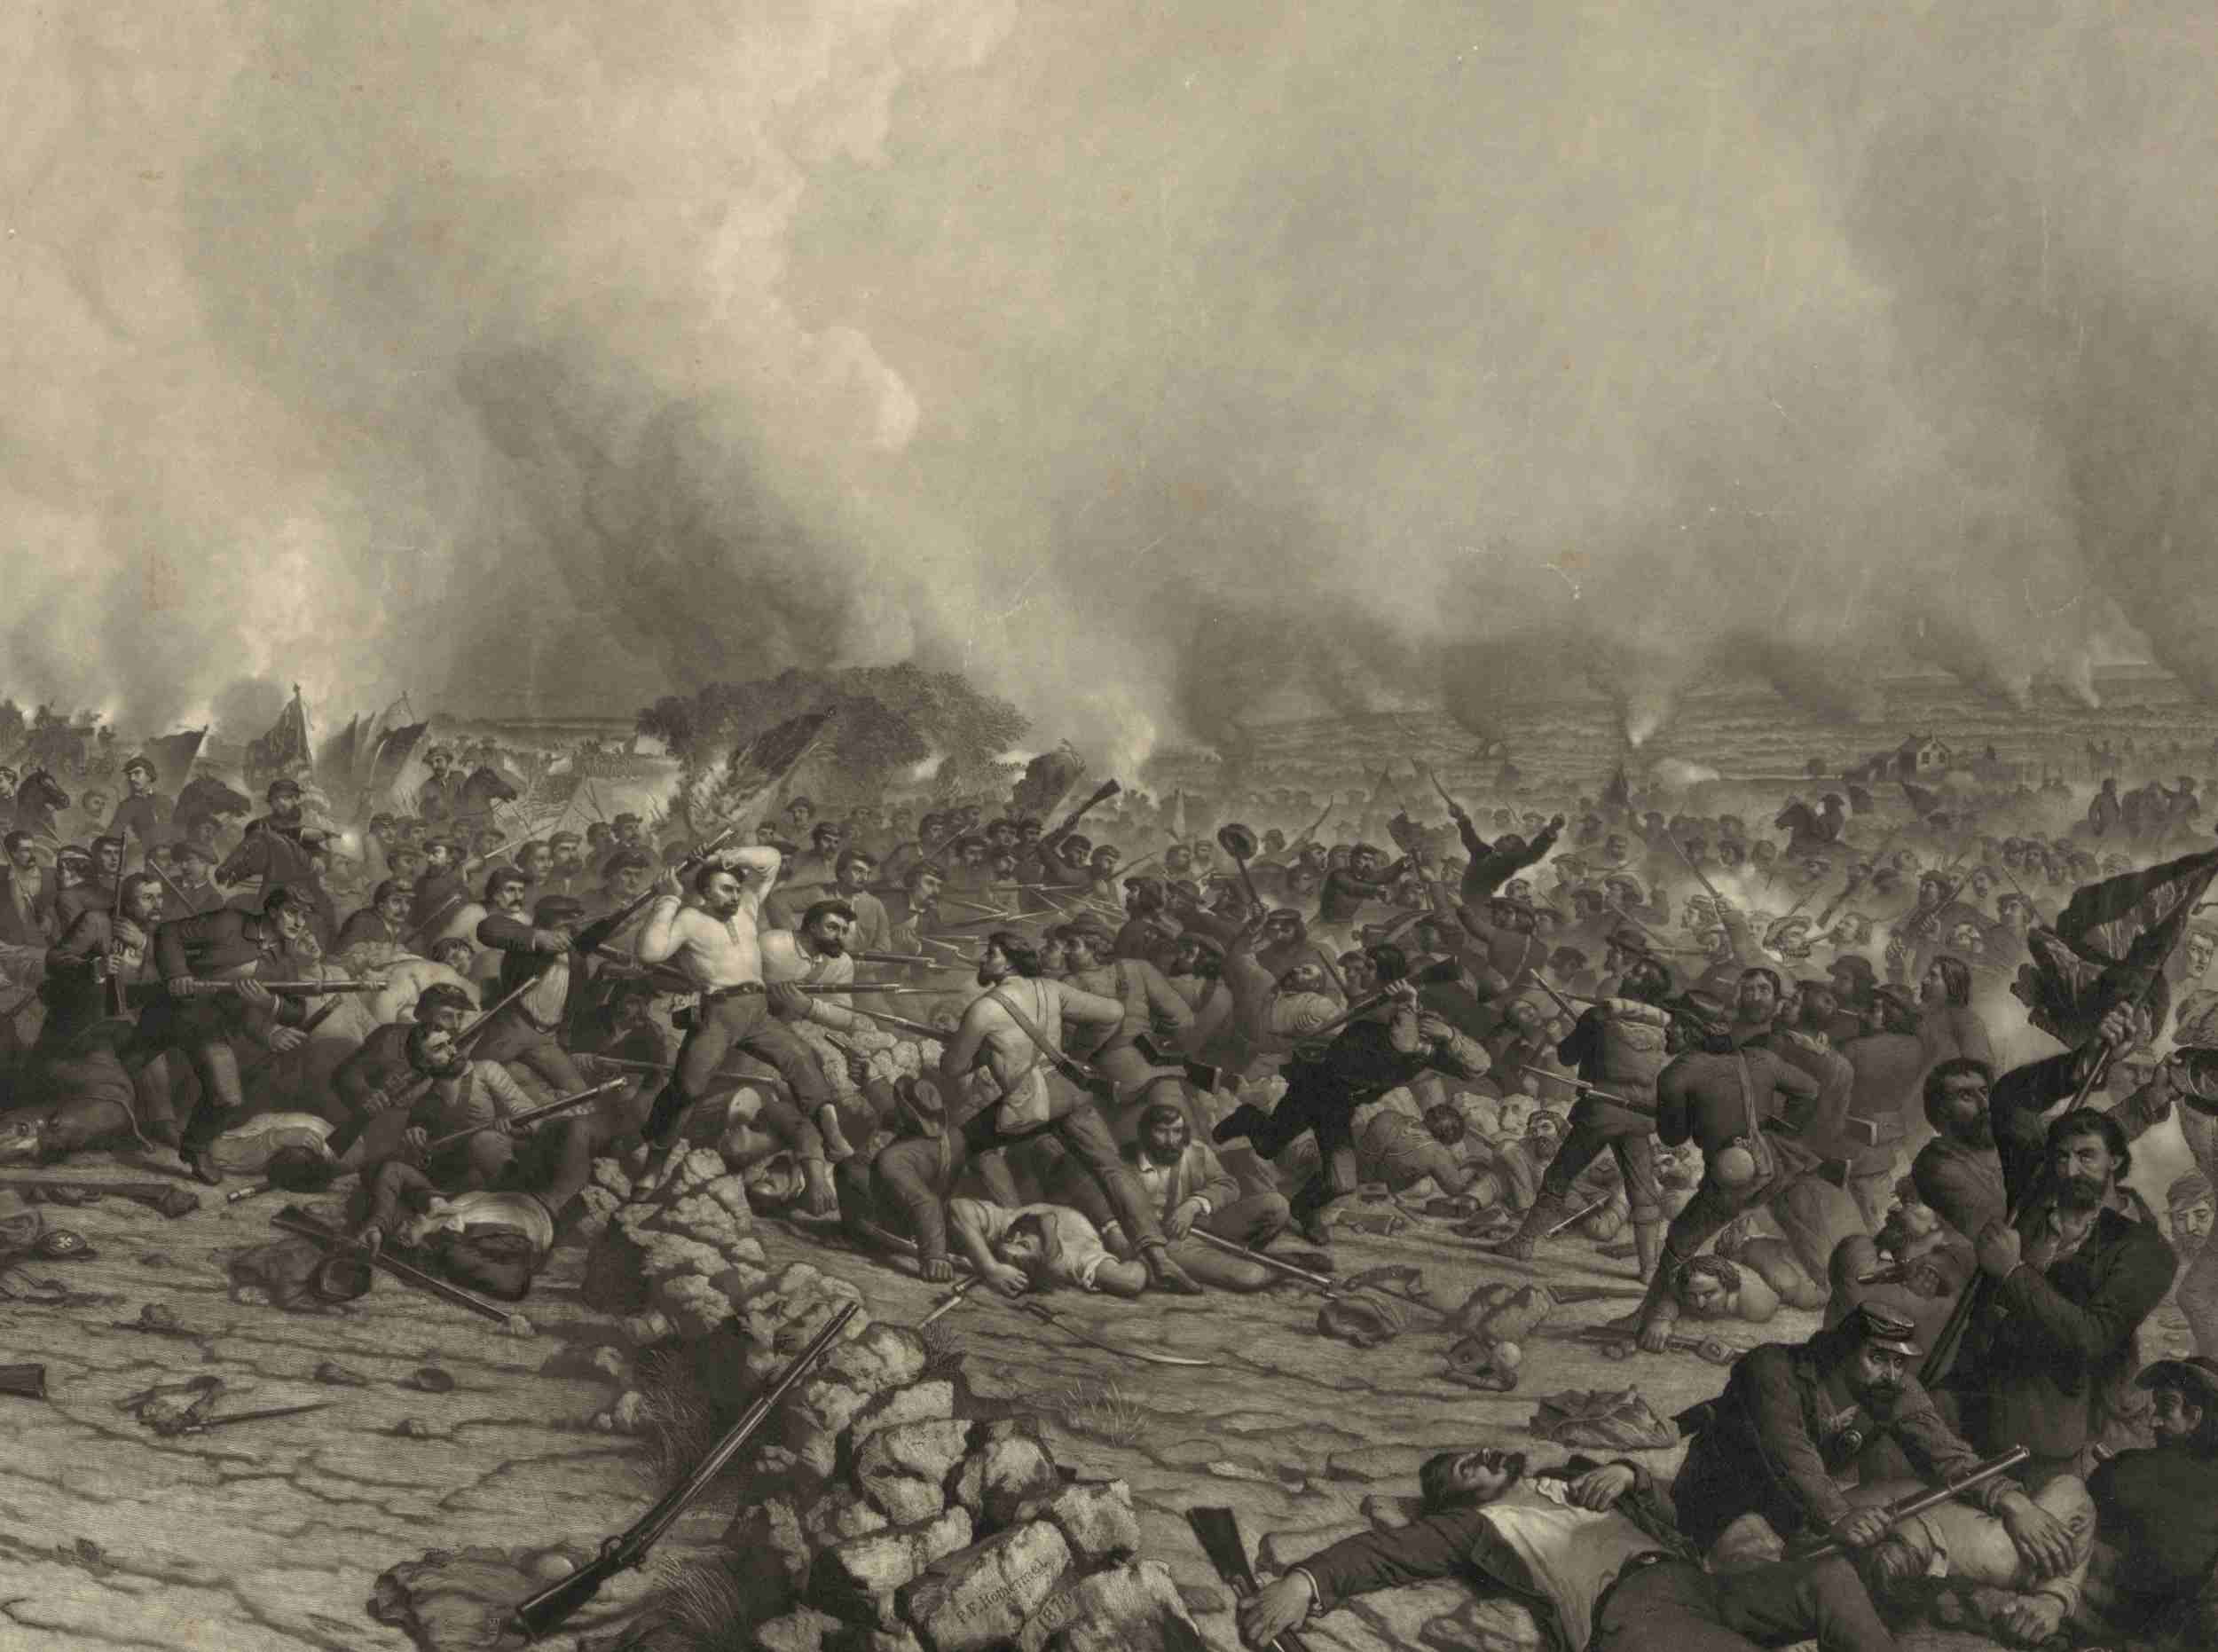 Pickett's Charge at Gettysburg, depiction of fighting at the stone wall